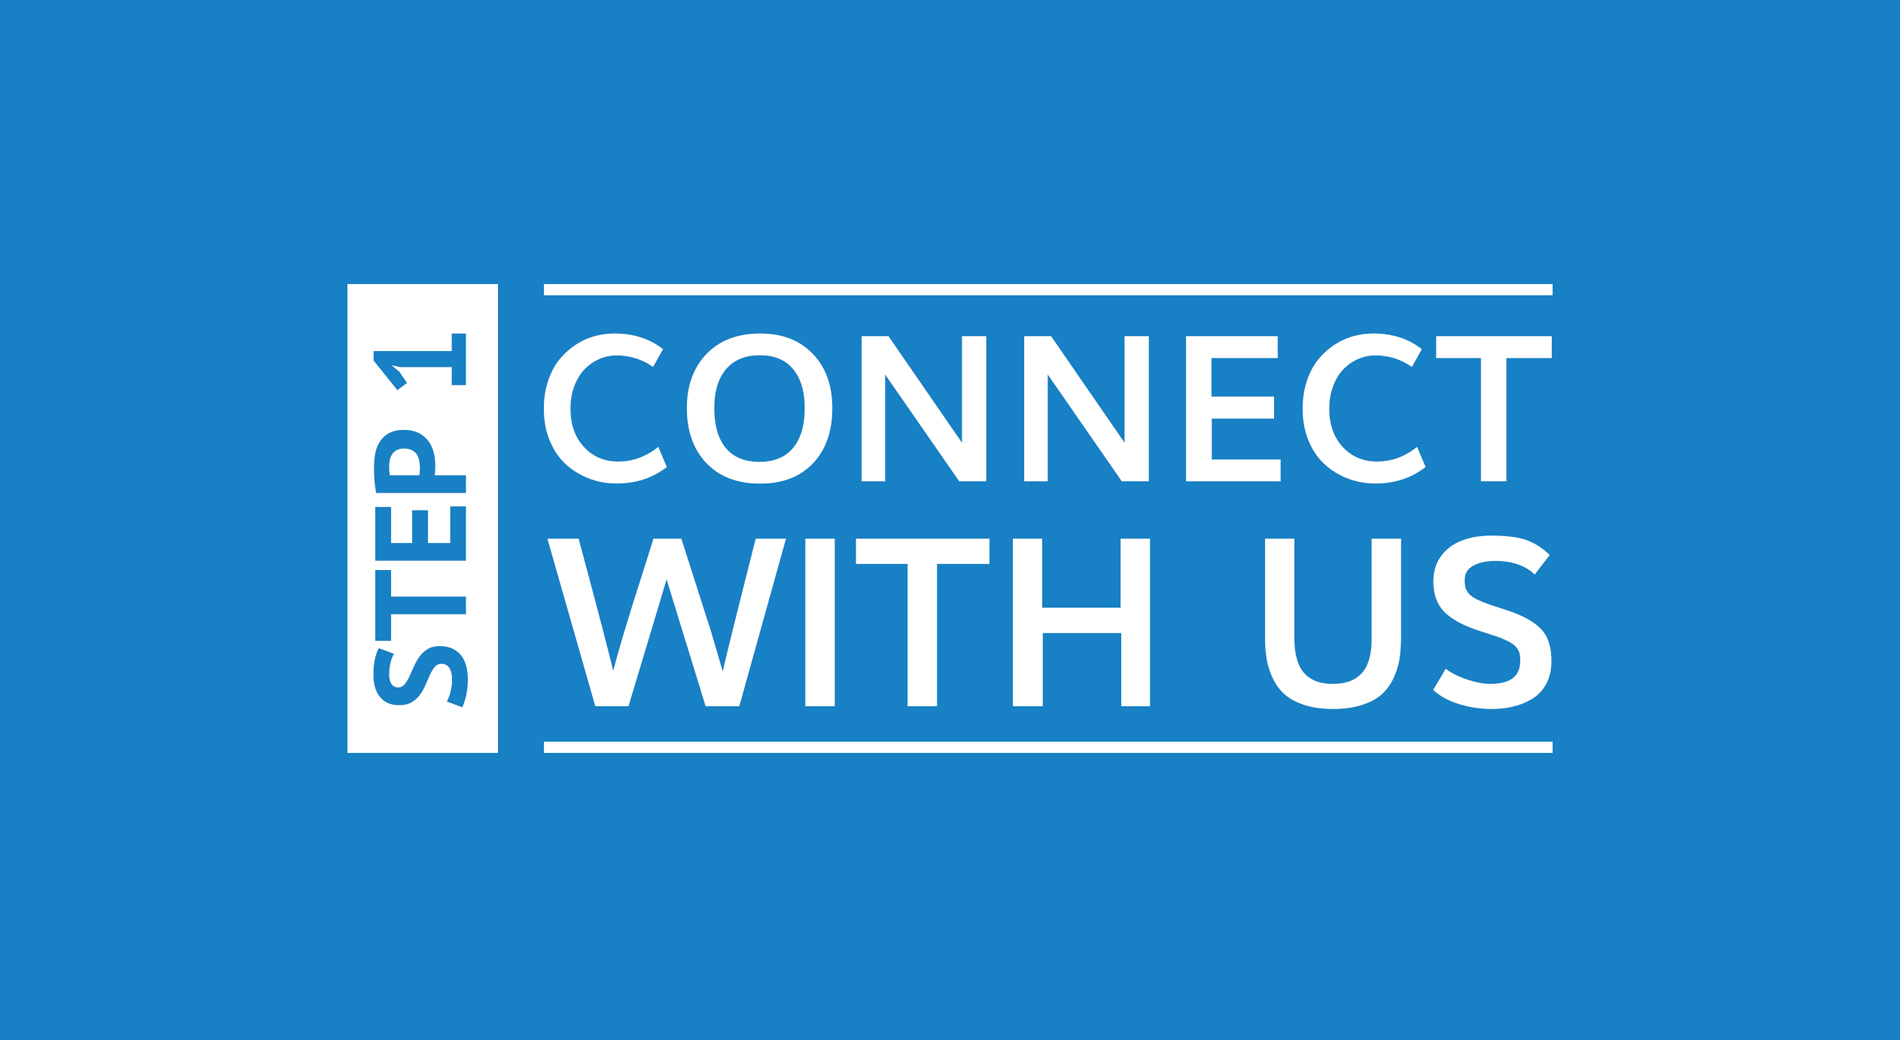 Join us on social media and let's have a conversation. We're here for you.